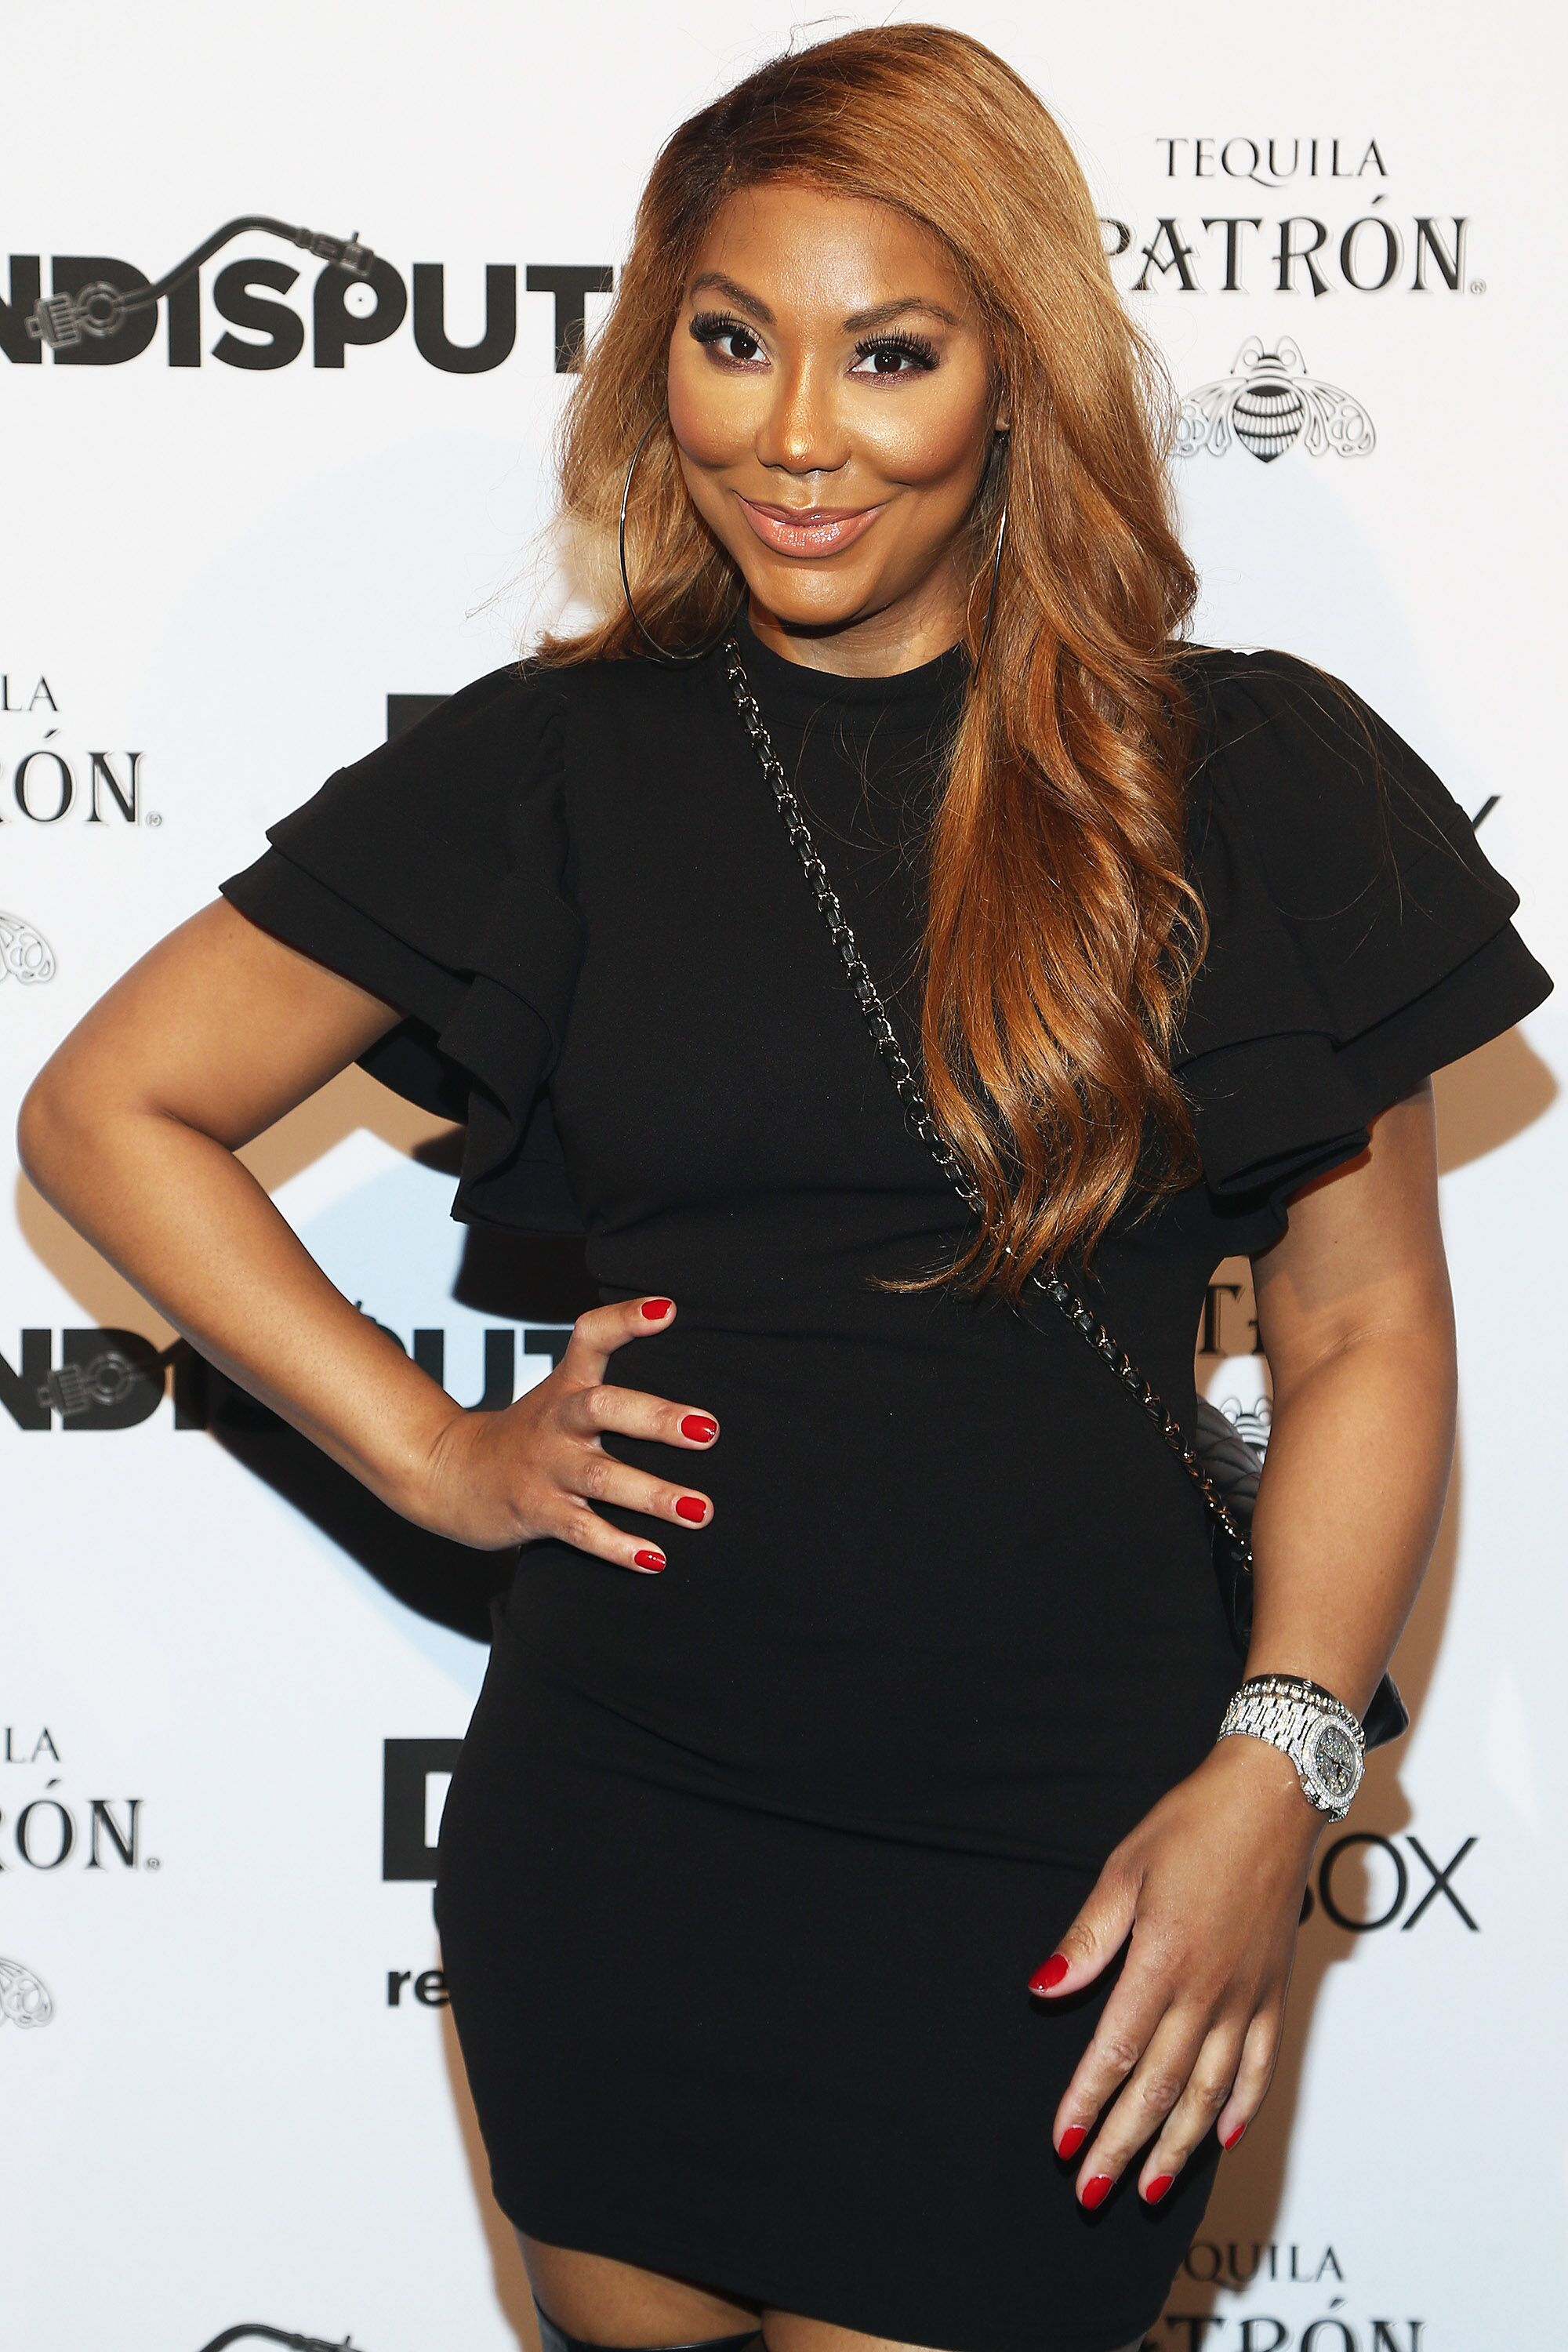 Singer Tamar Braxton attends the Def Jam Celebrates NBA All Star Weekend at Milk Studios in Hollywood With Performances by 2 Chainz, Fabolous & Jadakiss, Presented by Patron Tequila at Milk Studios on February 16, 2018 | Photo: Getty Images